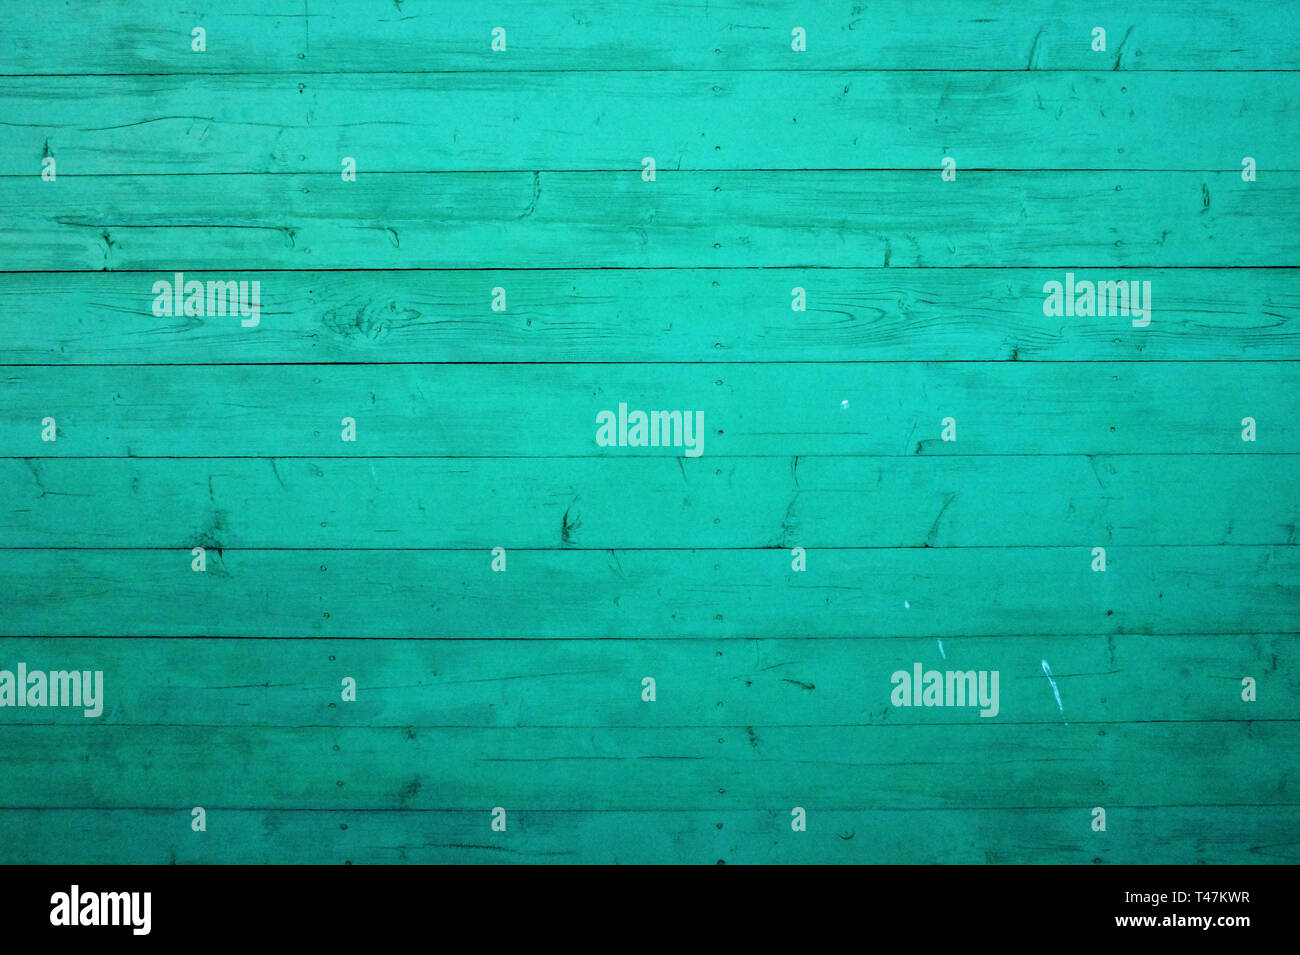 Unpolished wood texture background with metal nail heads. Shabby planks painted in light green colour. - Stock Image